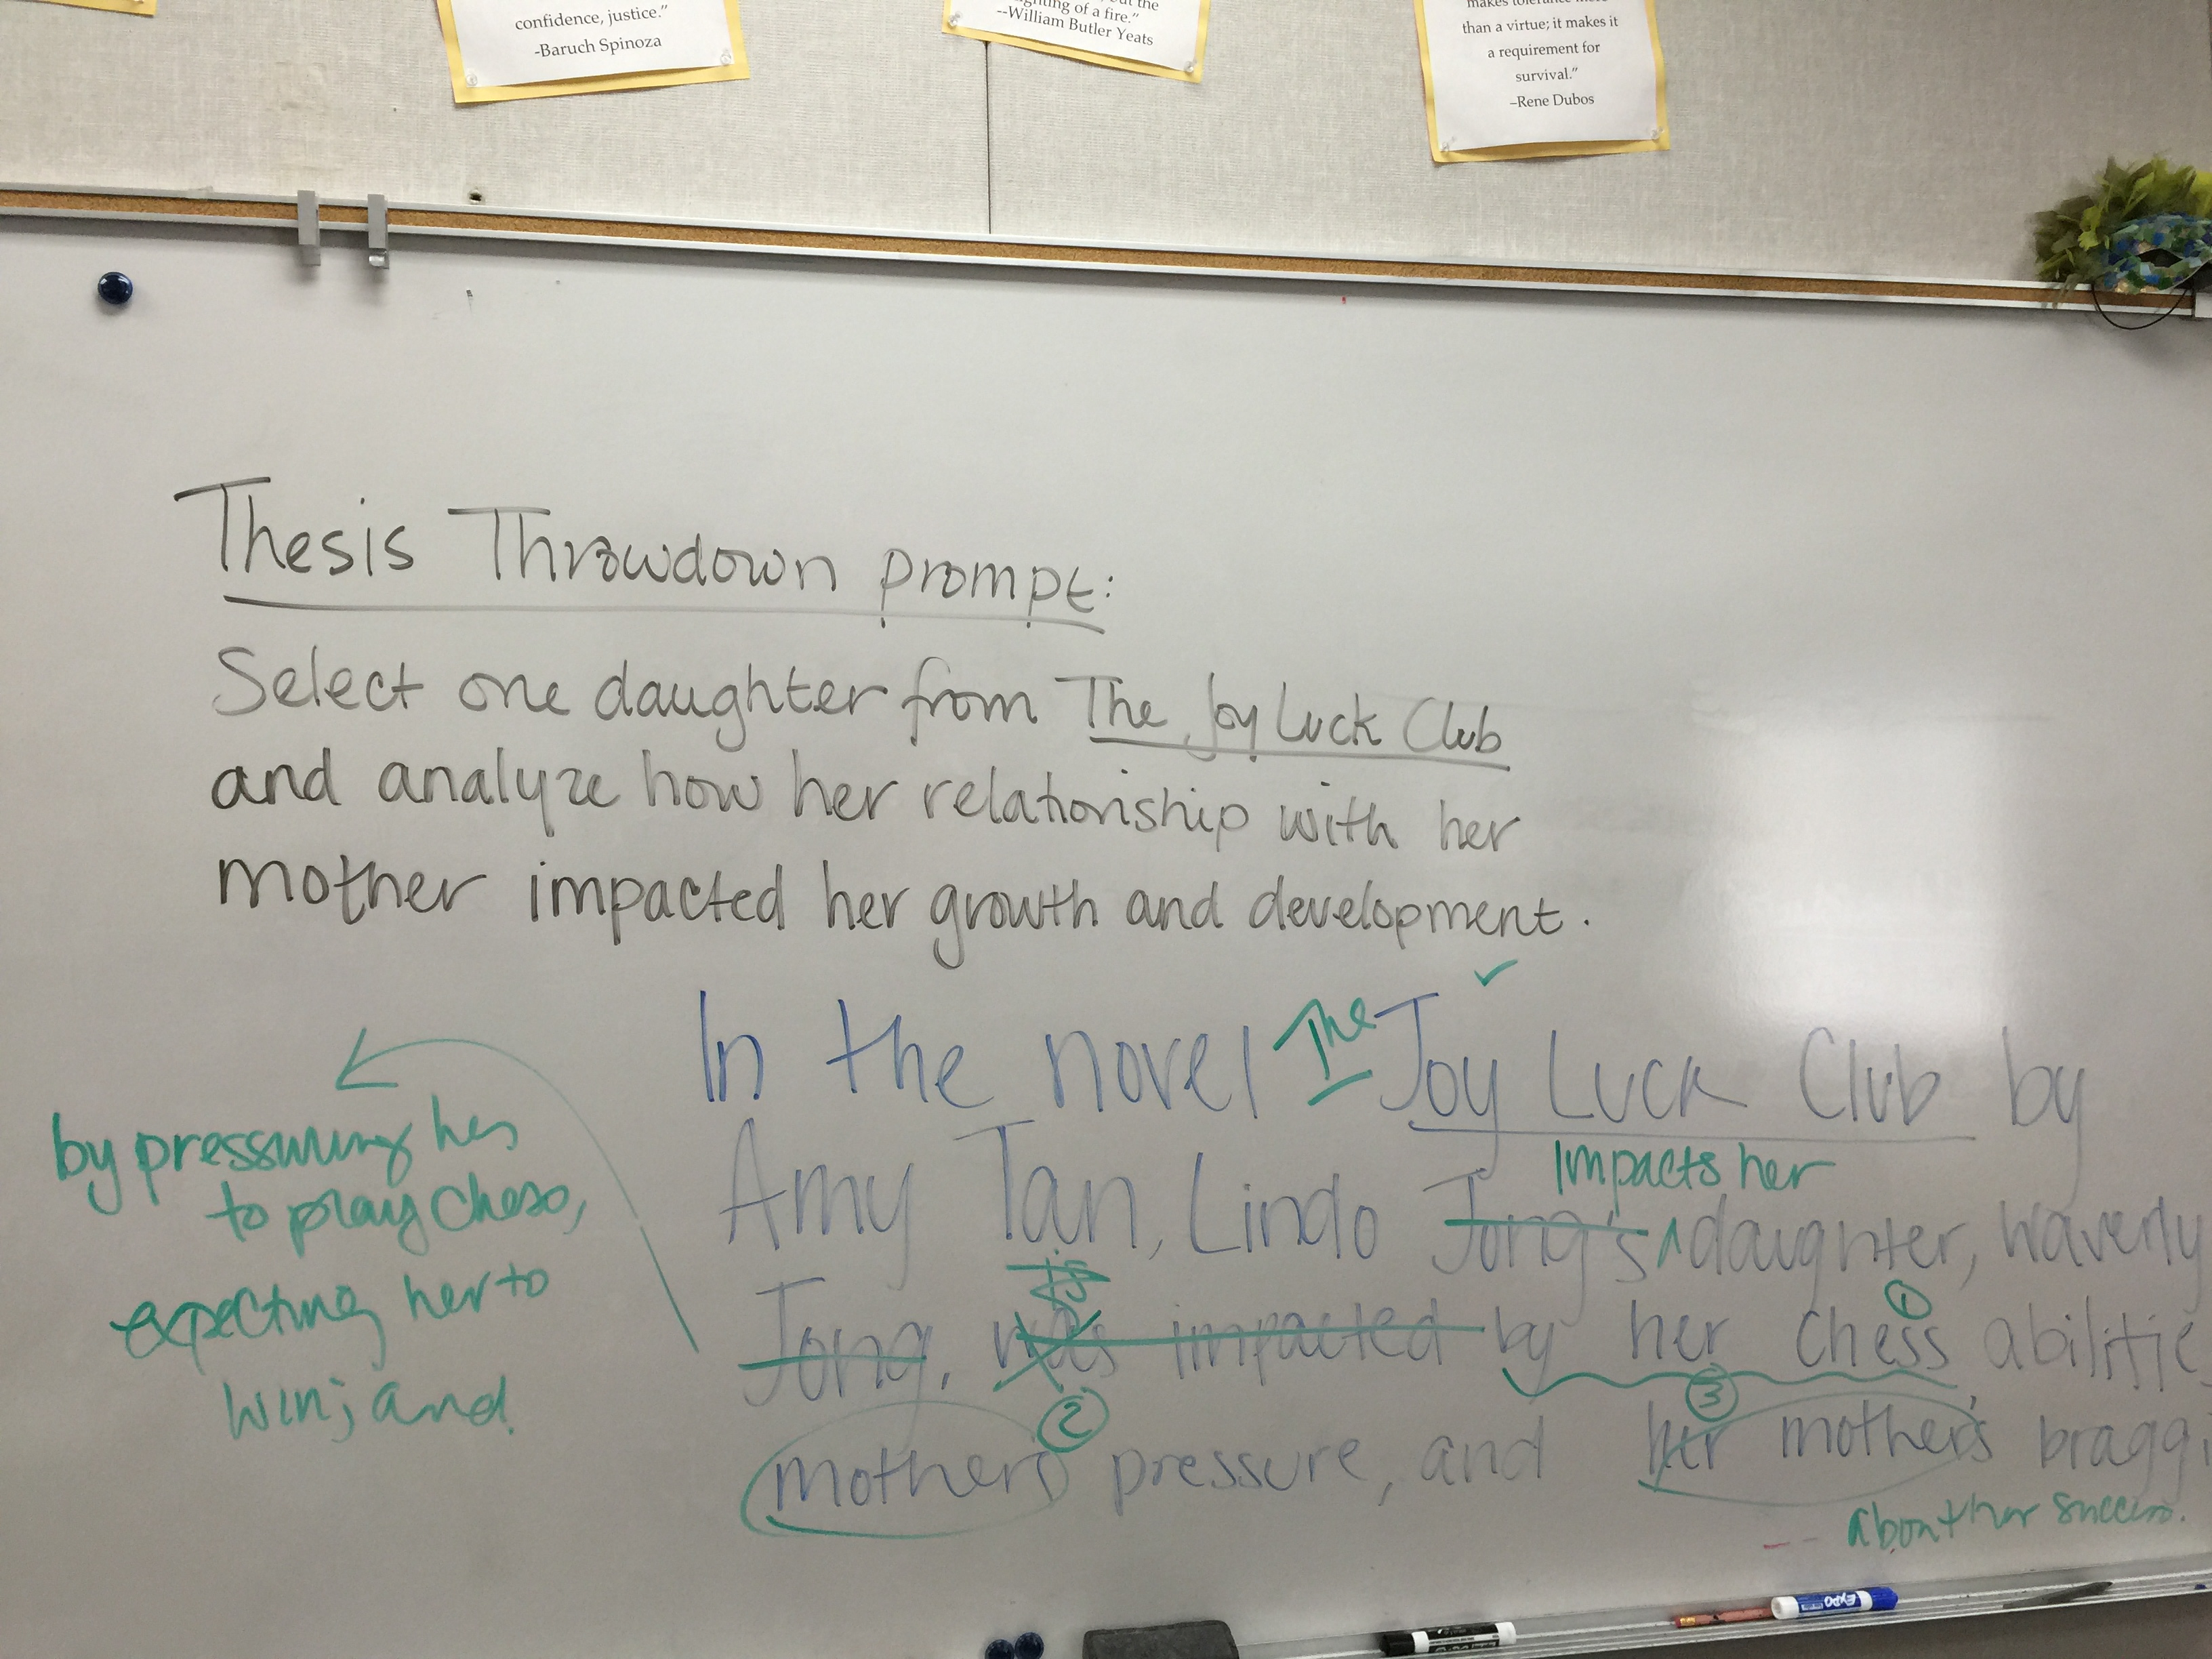 thesis statement throwdown